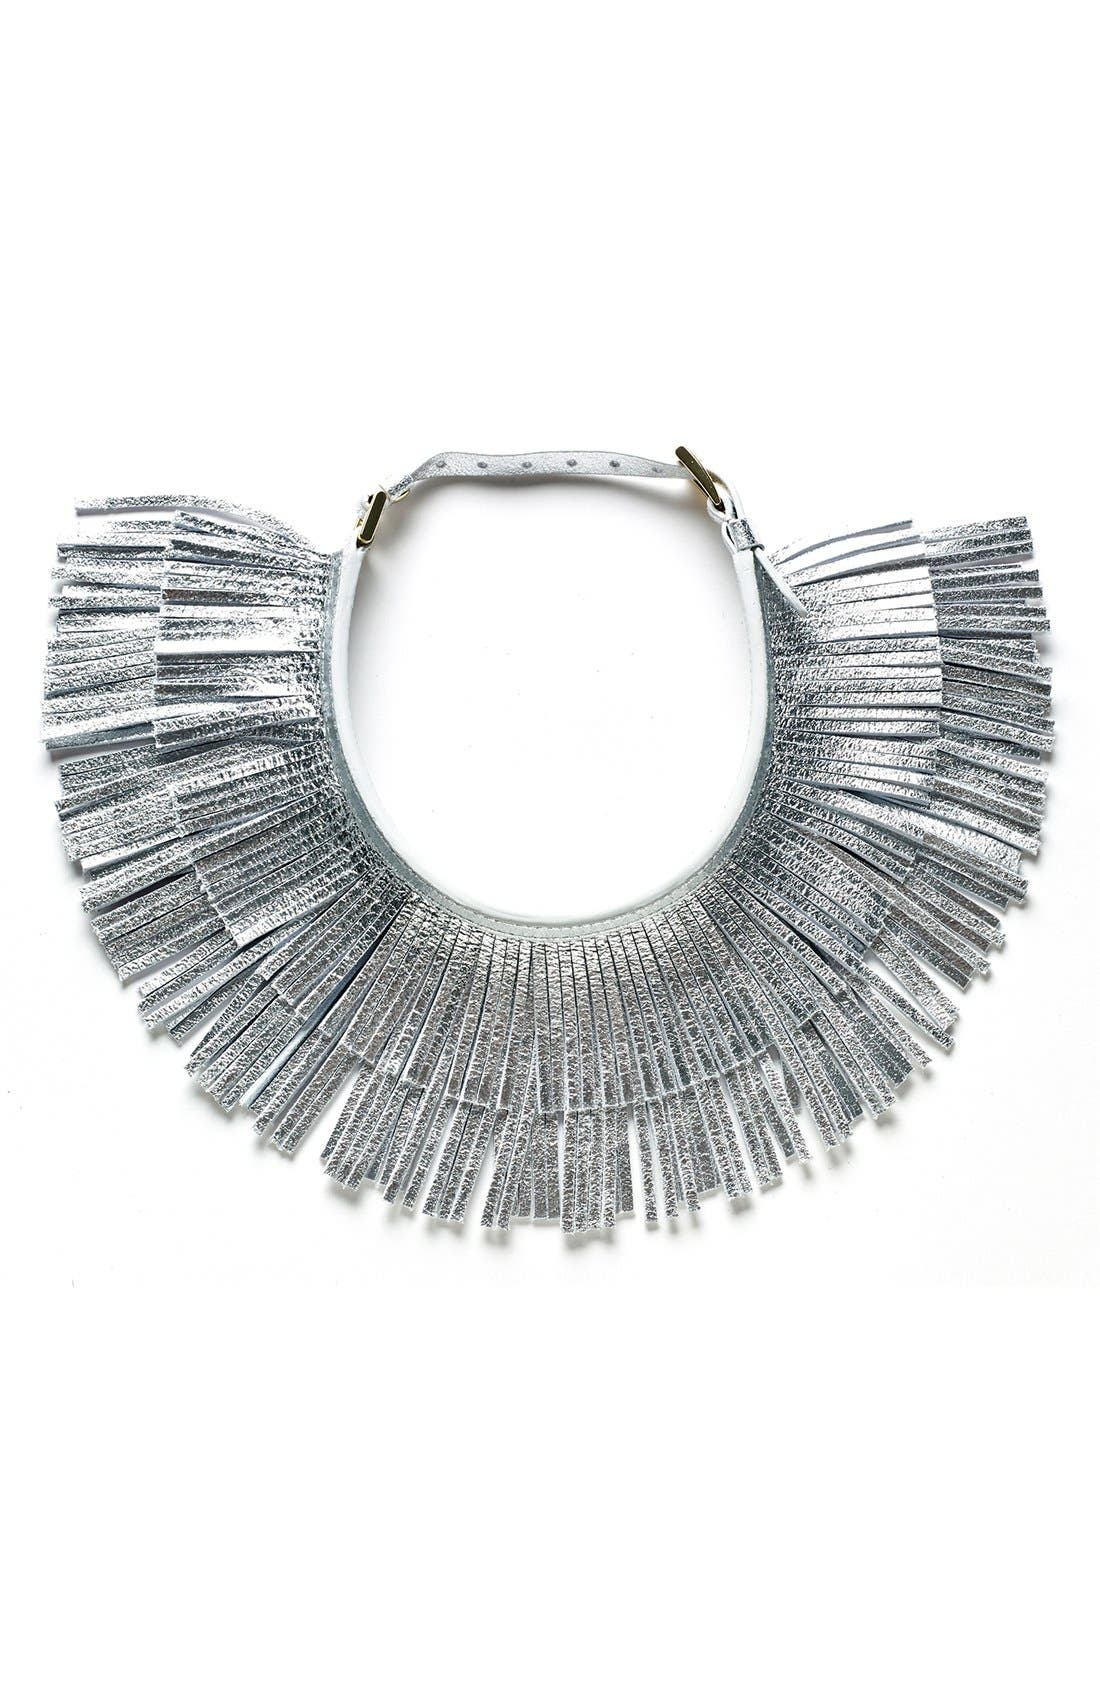 Main Image - Hayden-Harnett 'Ilaria' Leather Fringe Collar Necklace